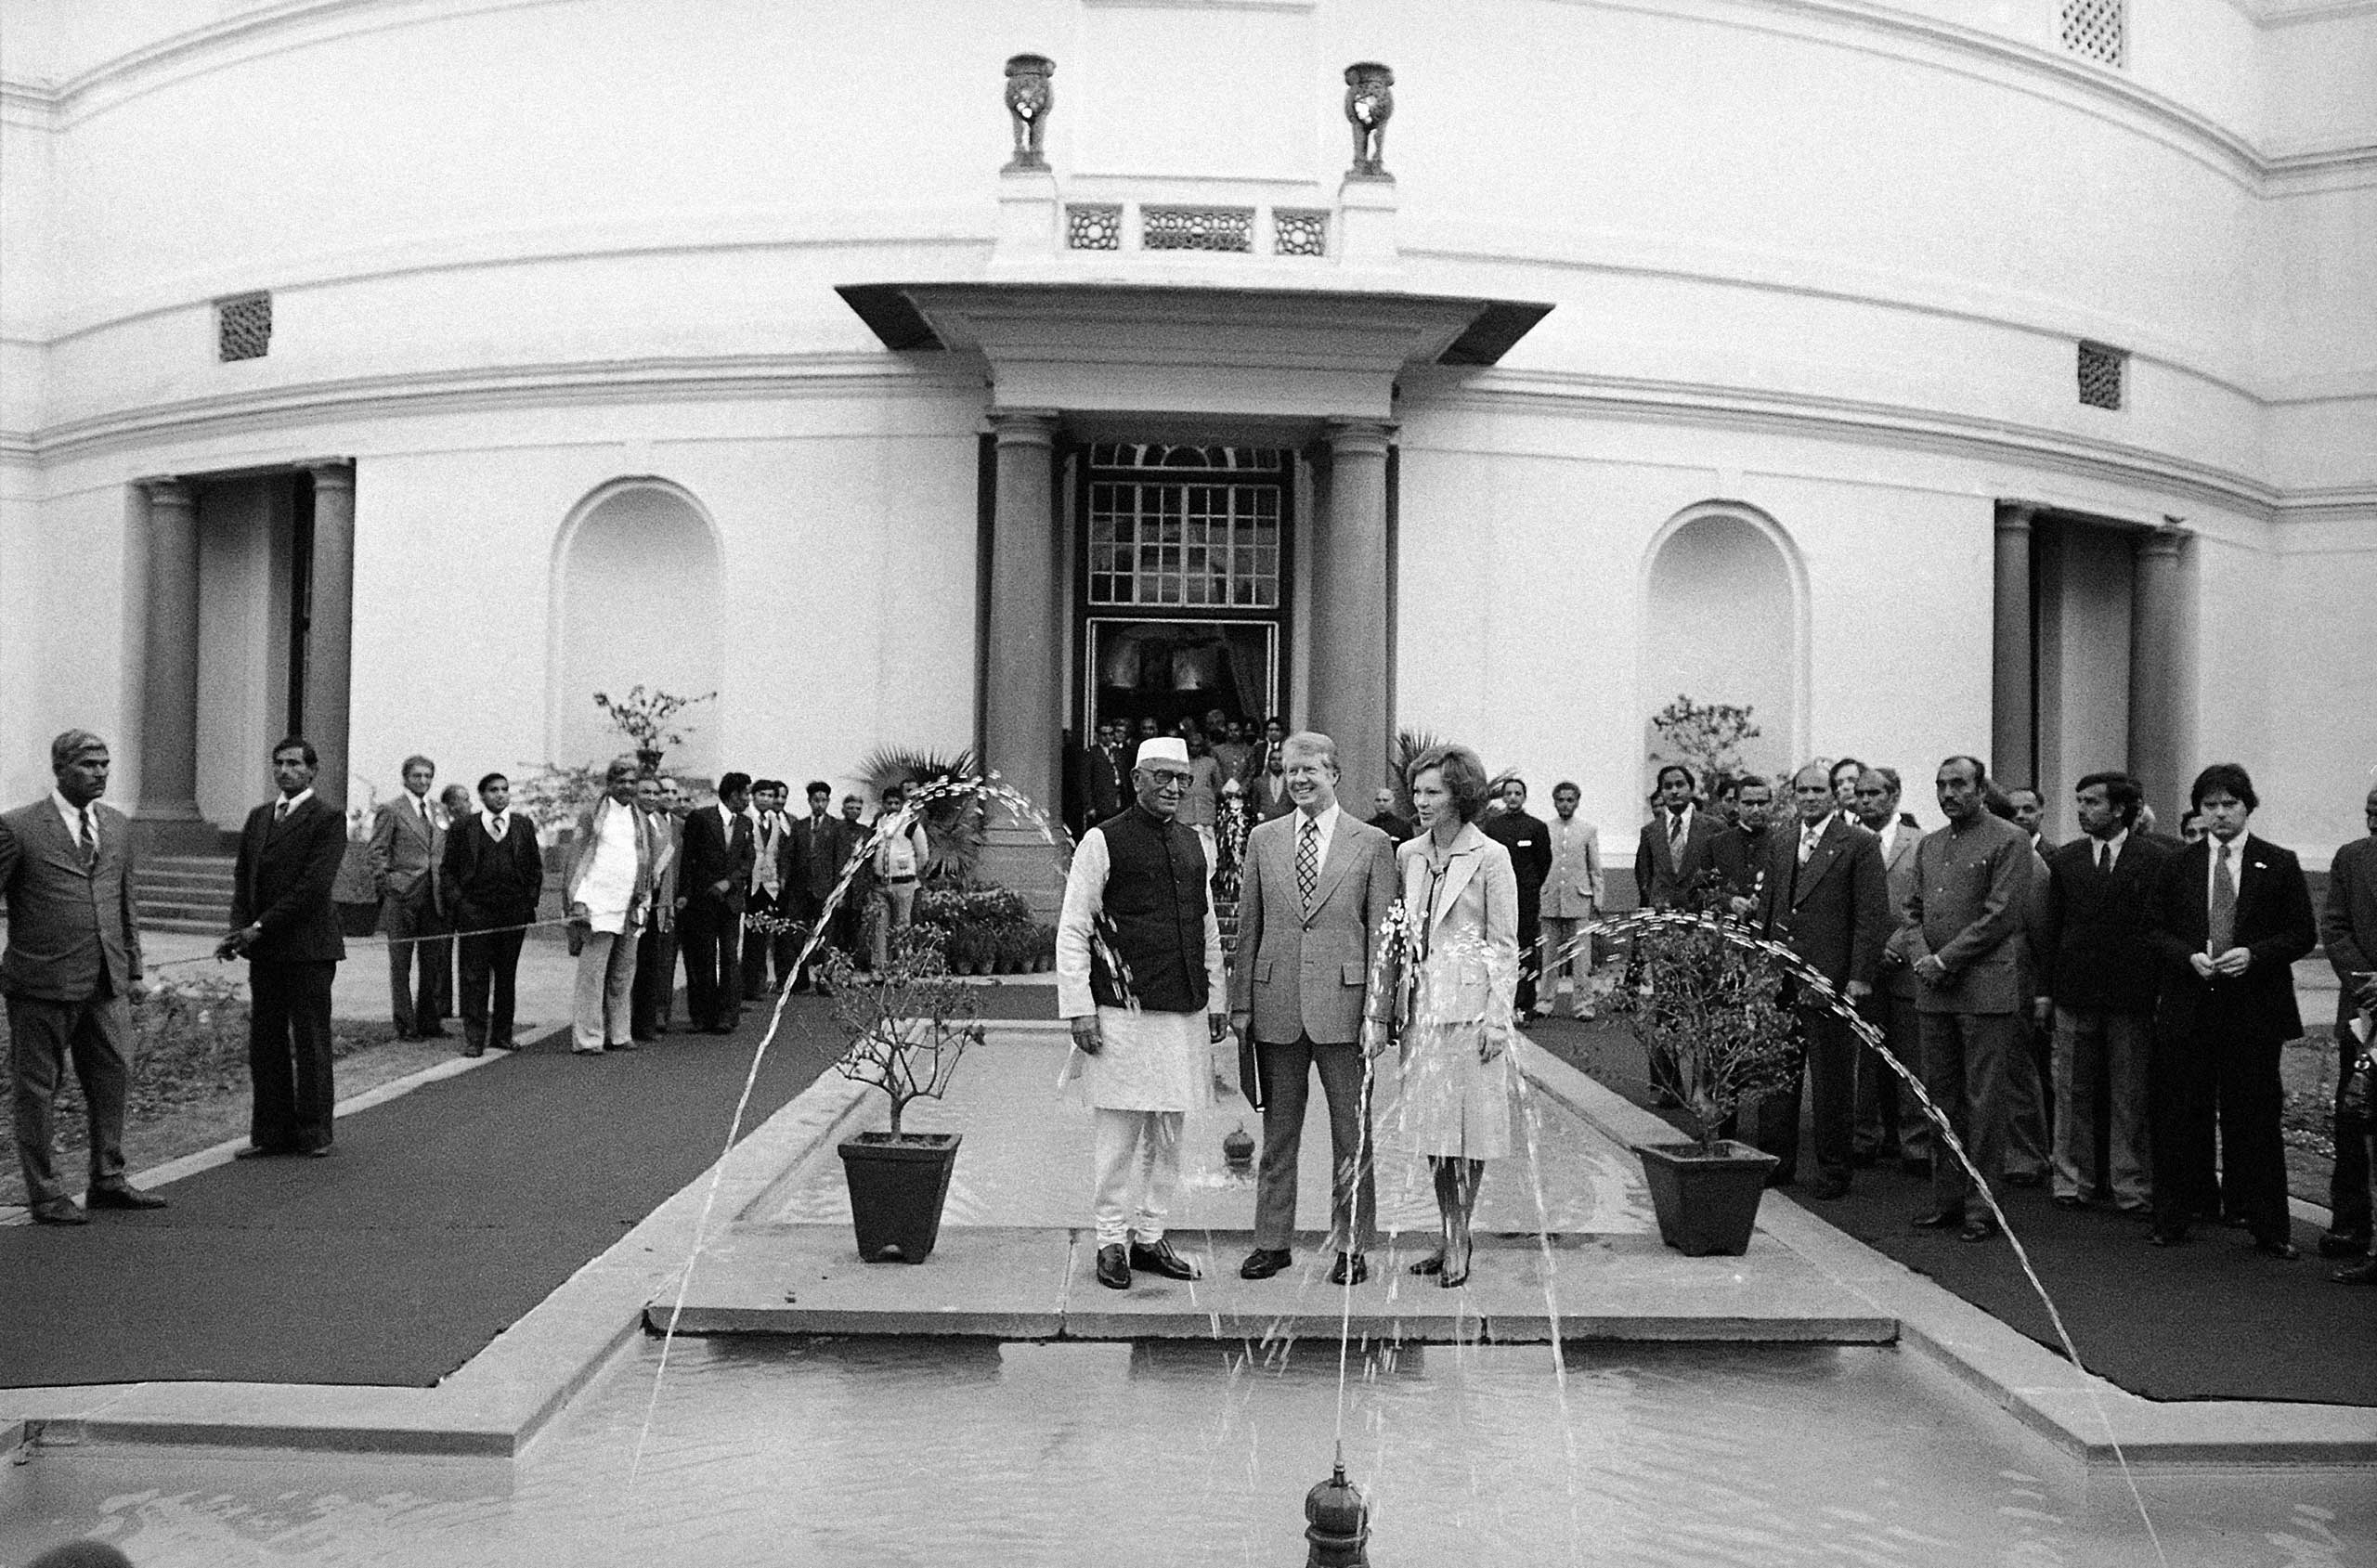 <b>1978:</b> When the anti-Soviet Janata Party came to power in the late 70s, Indian relations with the US began to improve. President Jimmy Carter visited Indian Prime Minister Morarji Desai in New Delhi in 1978.